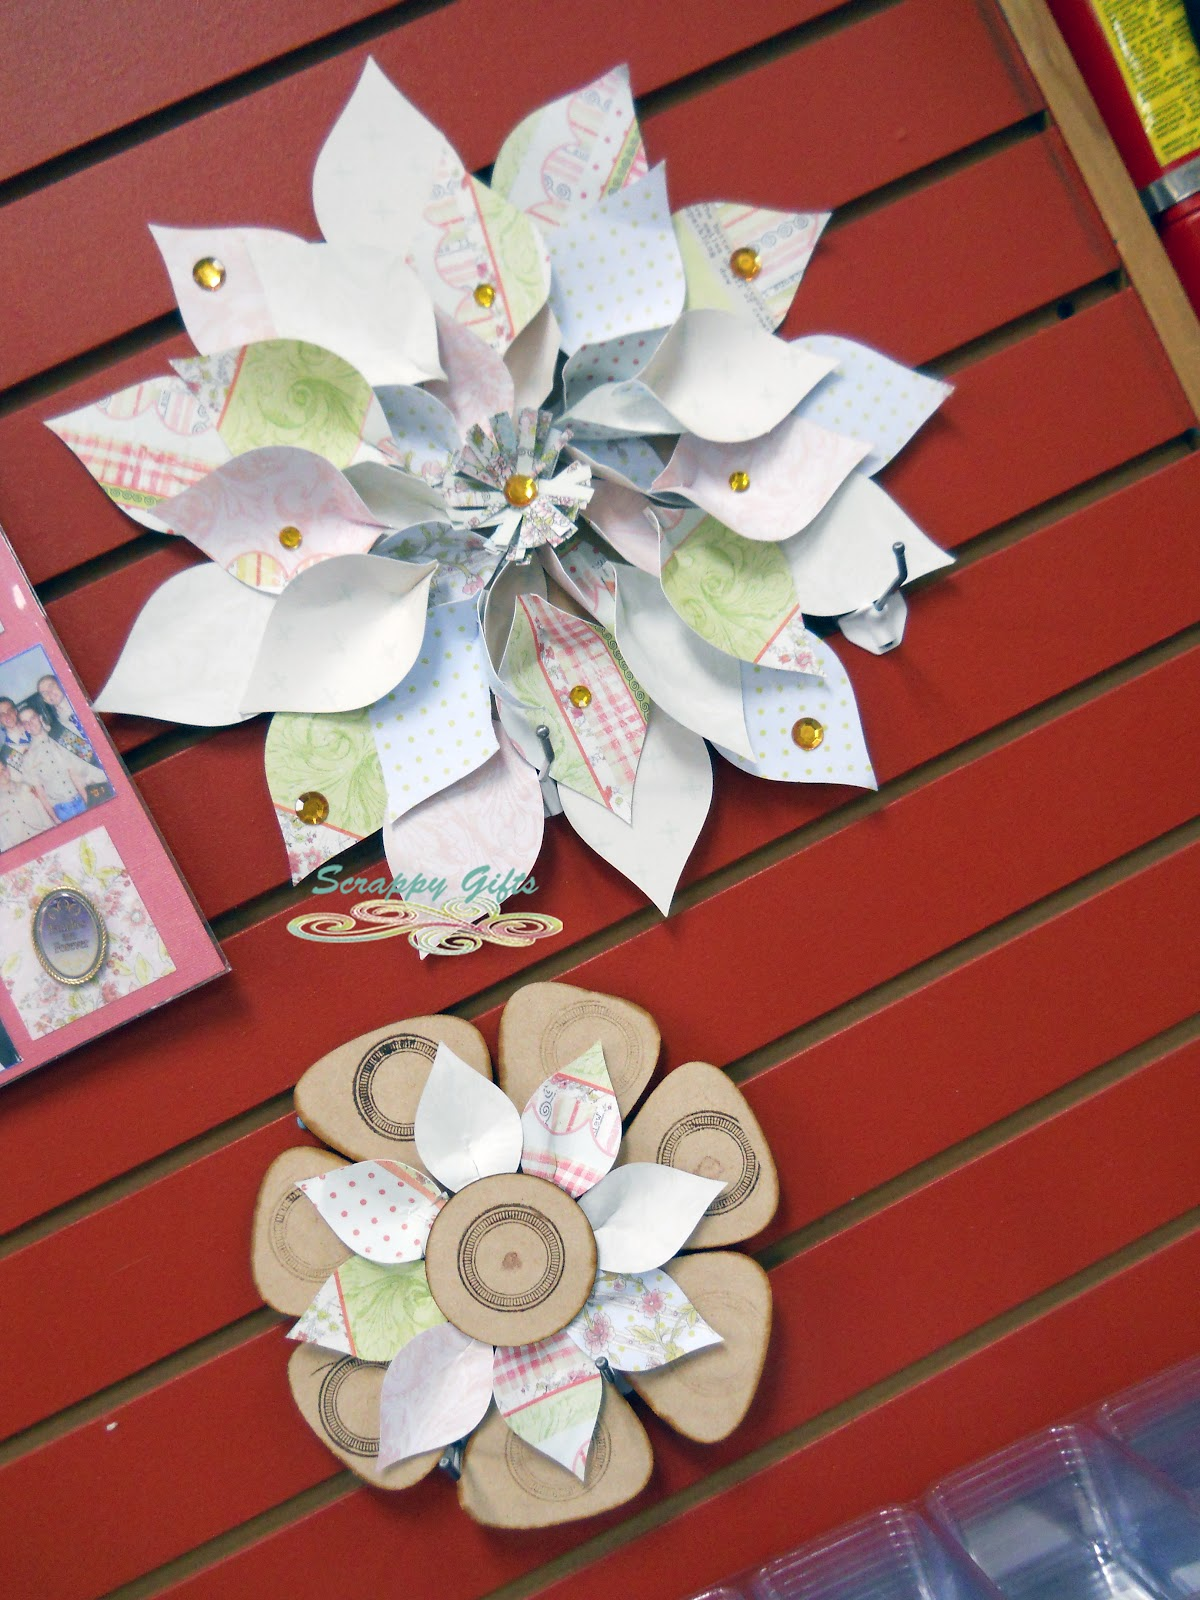 How to scrapbook flowers - Wall Flowers